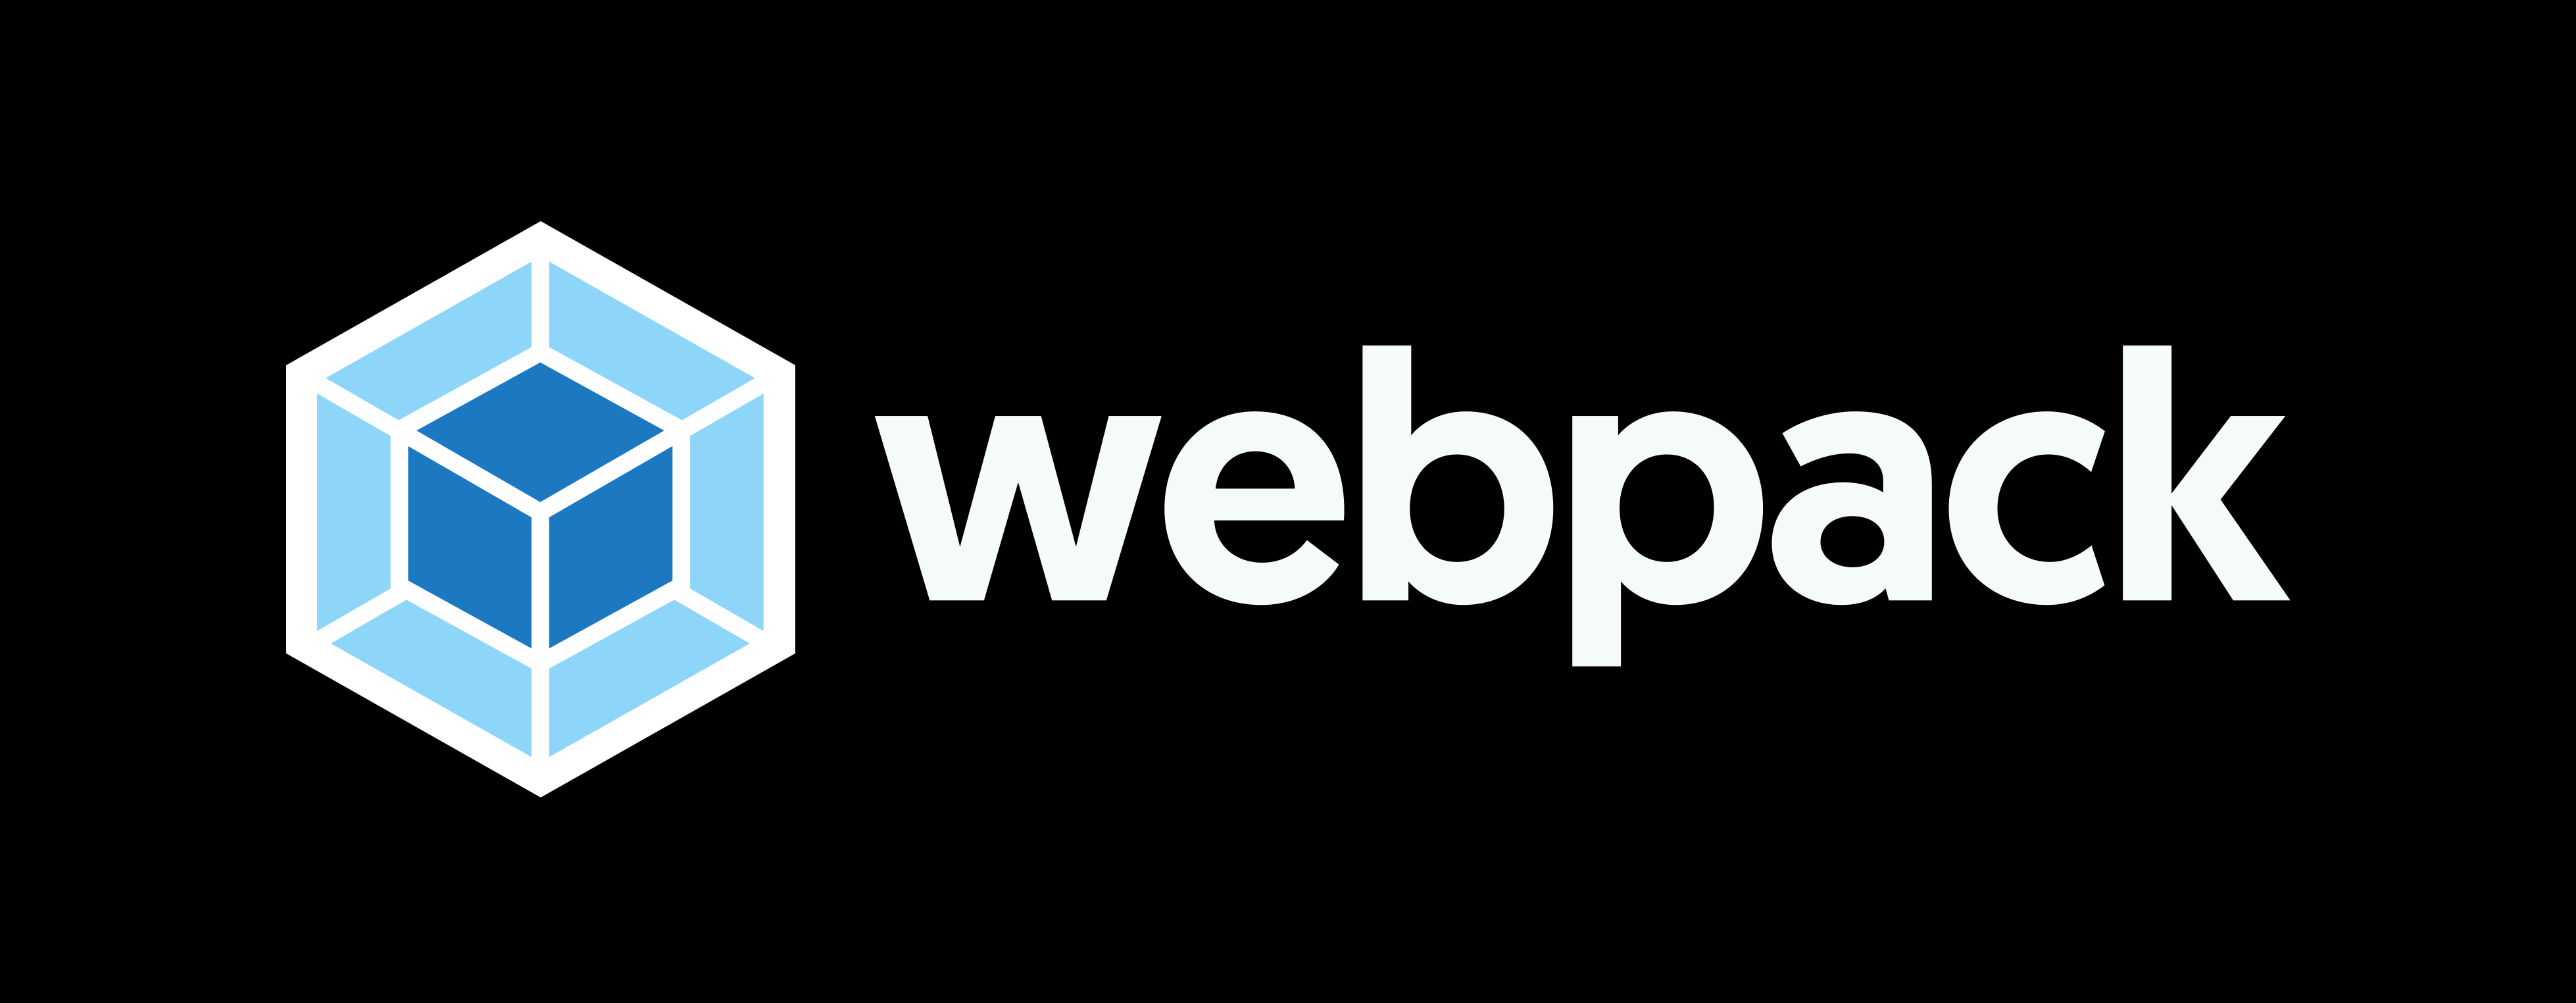 Why Webpack? (or, How Not to Serve Javascript)